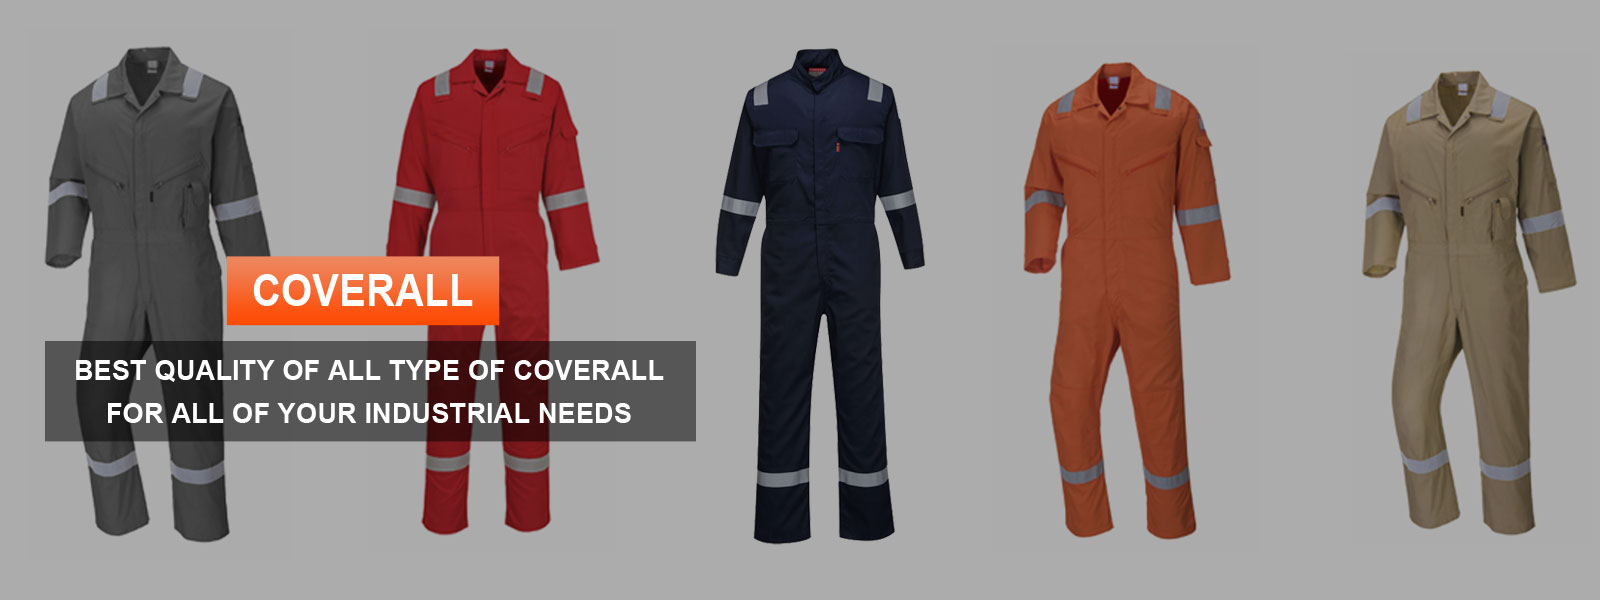 Coverall Manufacturers in Dubai